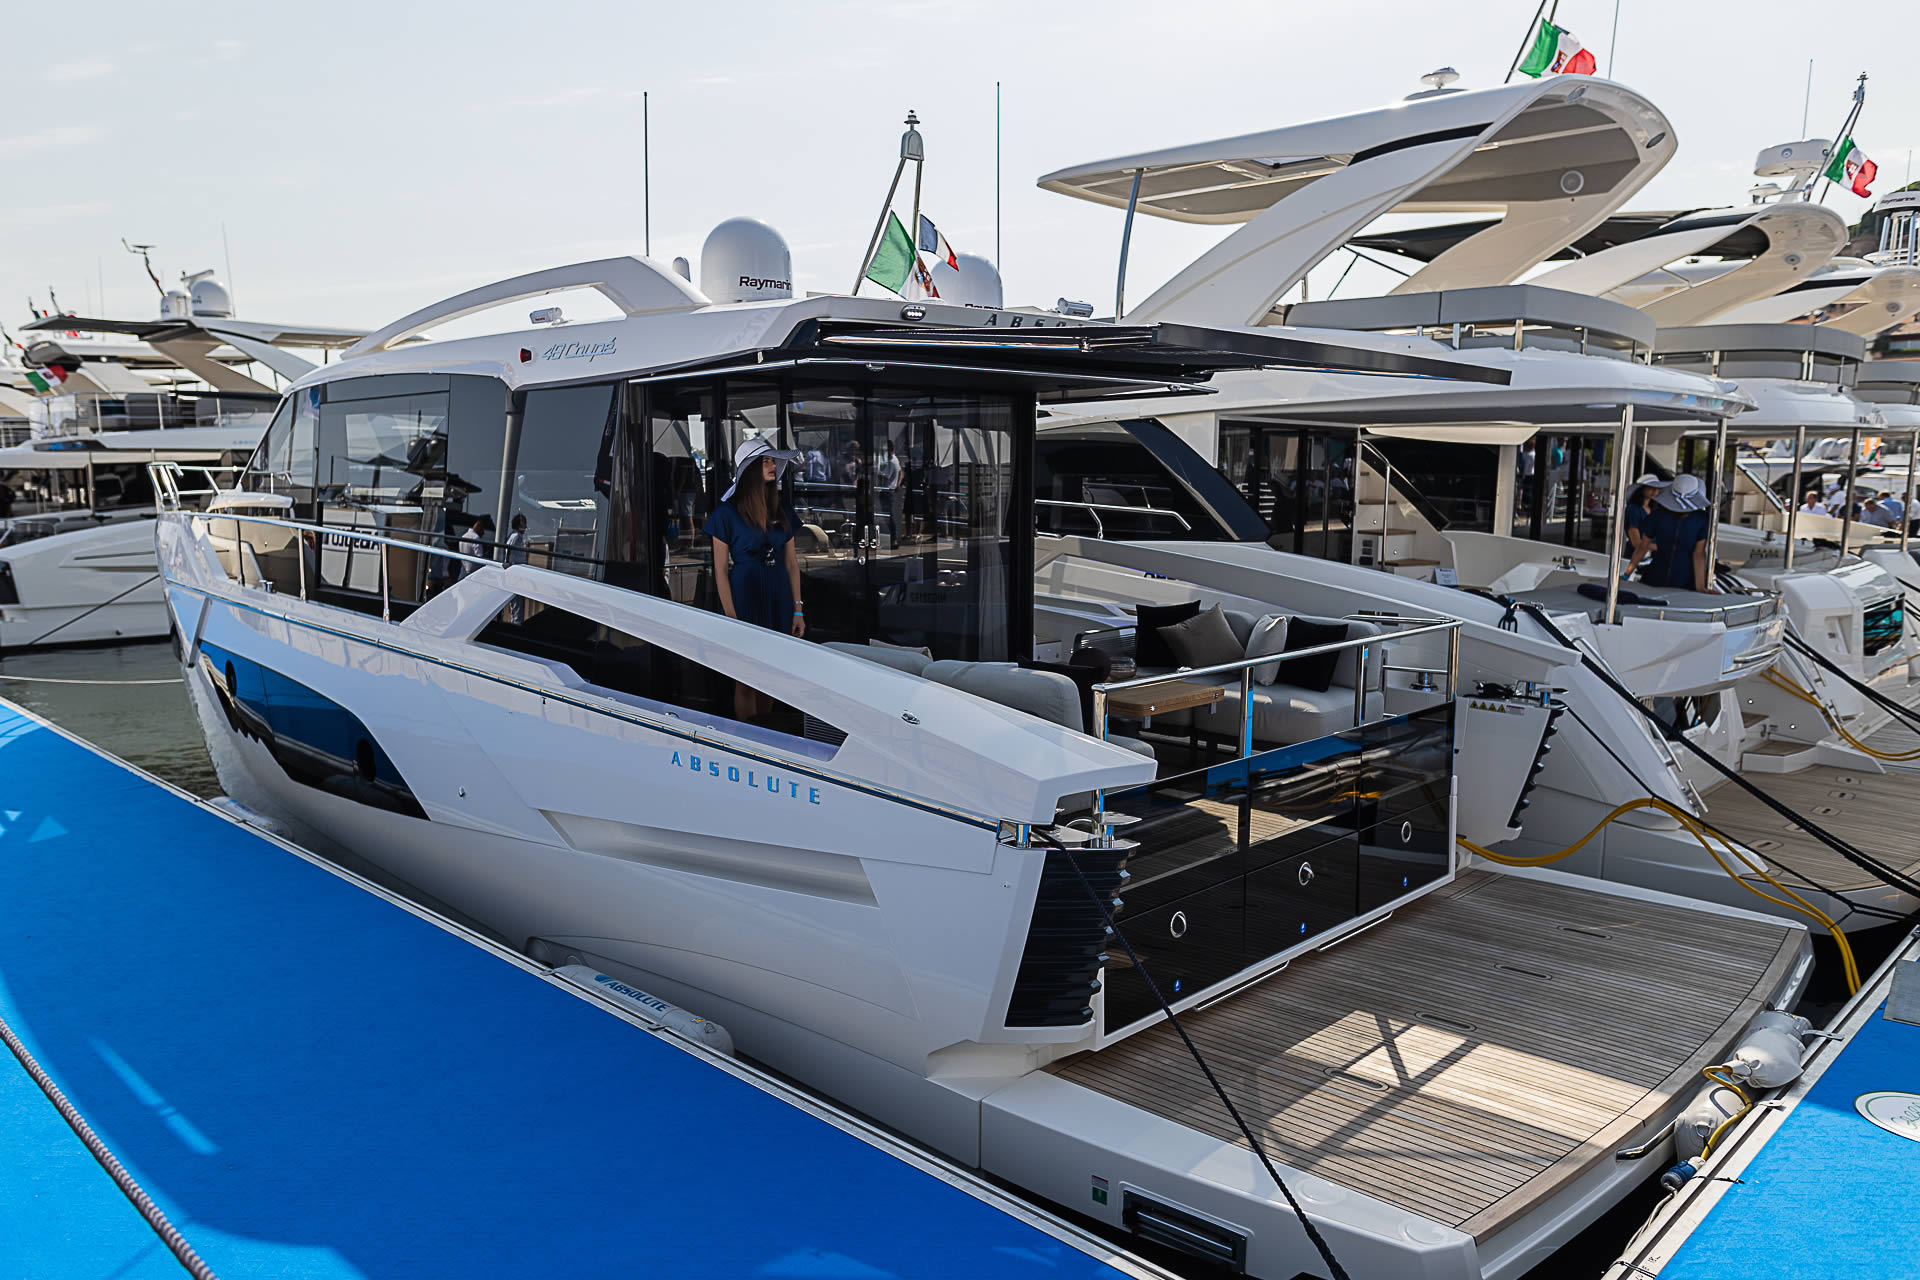 Absolute Yachts at the Cannes Yachting Festival 2021